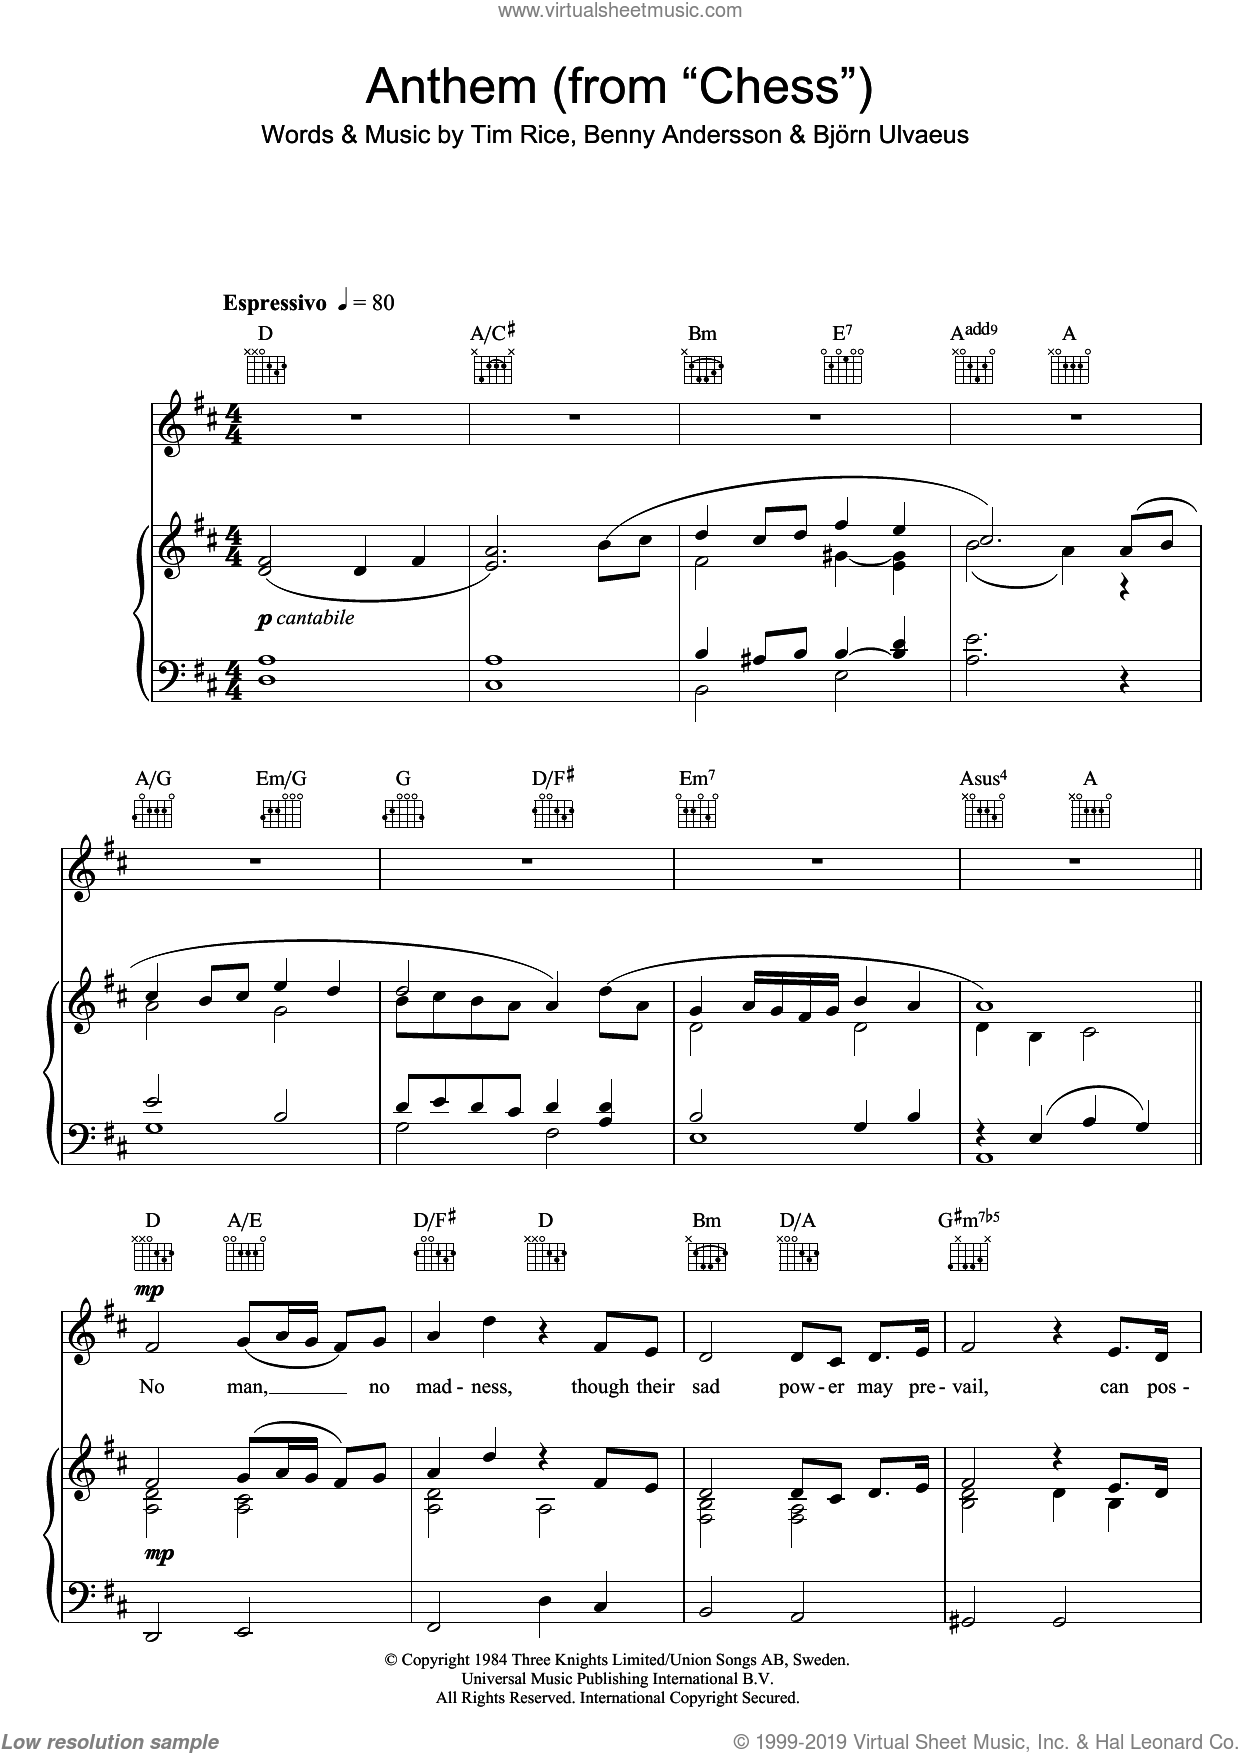 Anthem (from Chess) sheet music for voice, piano or guitar by Rhydian, Benny Andersson, Bjorn Ulvaeus, Miscellaneous and Tim Rice, intermediate skill level